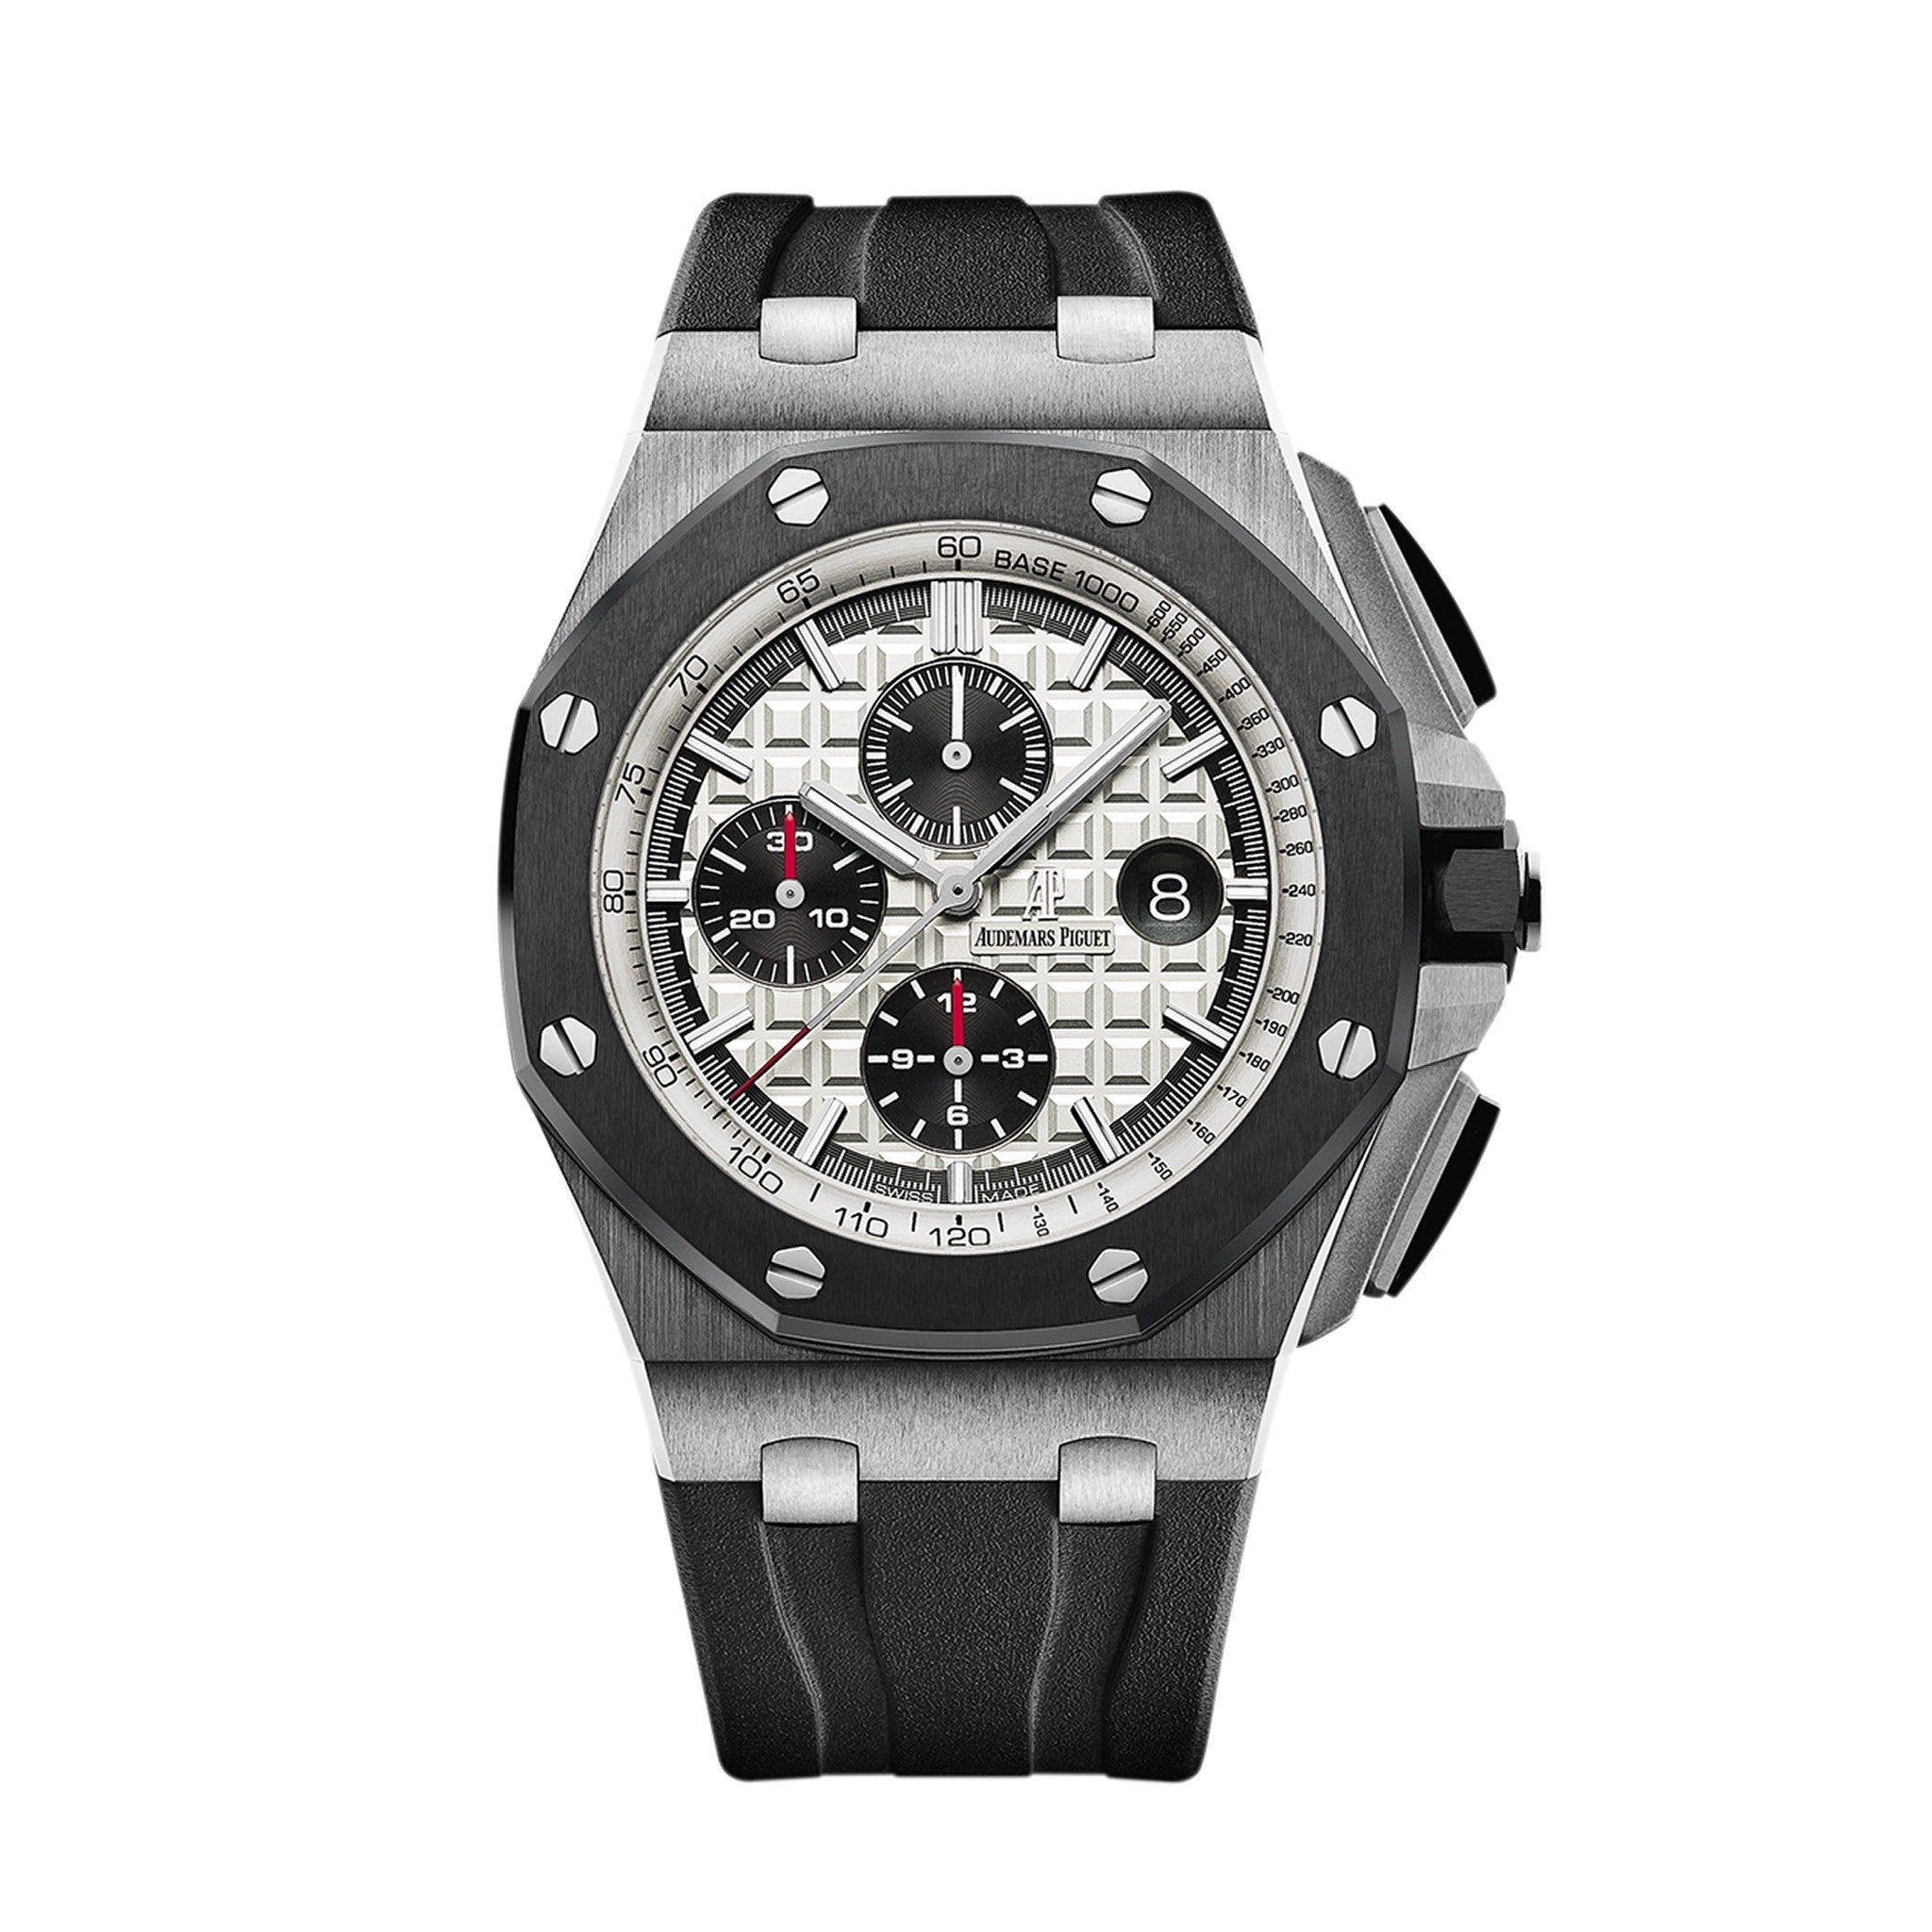 Royal Oak Offshore Chronograph 26400SO.OO.A002CA.01 - Audemars Piguet